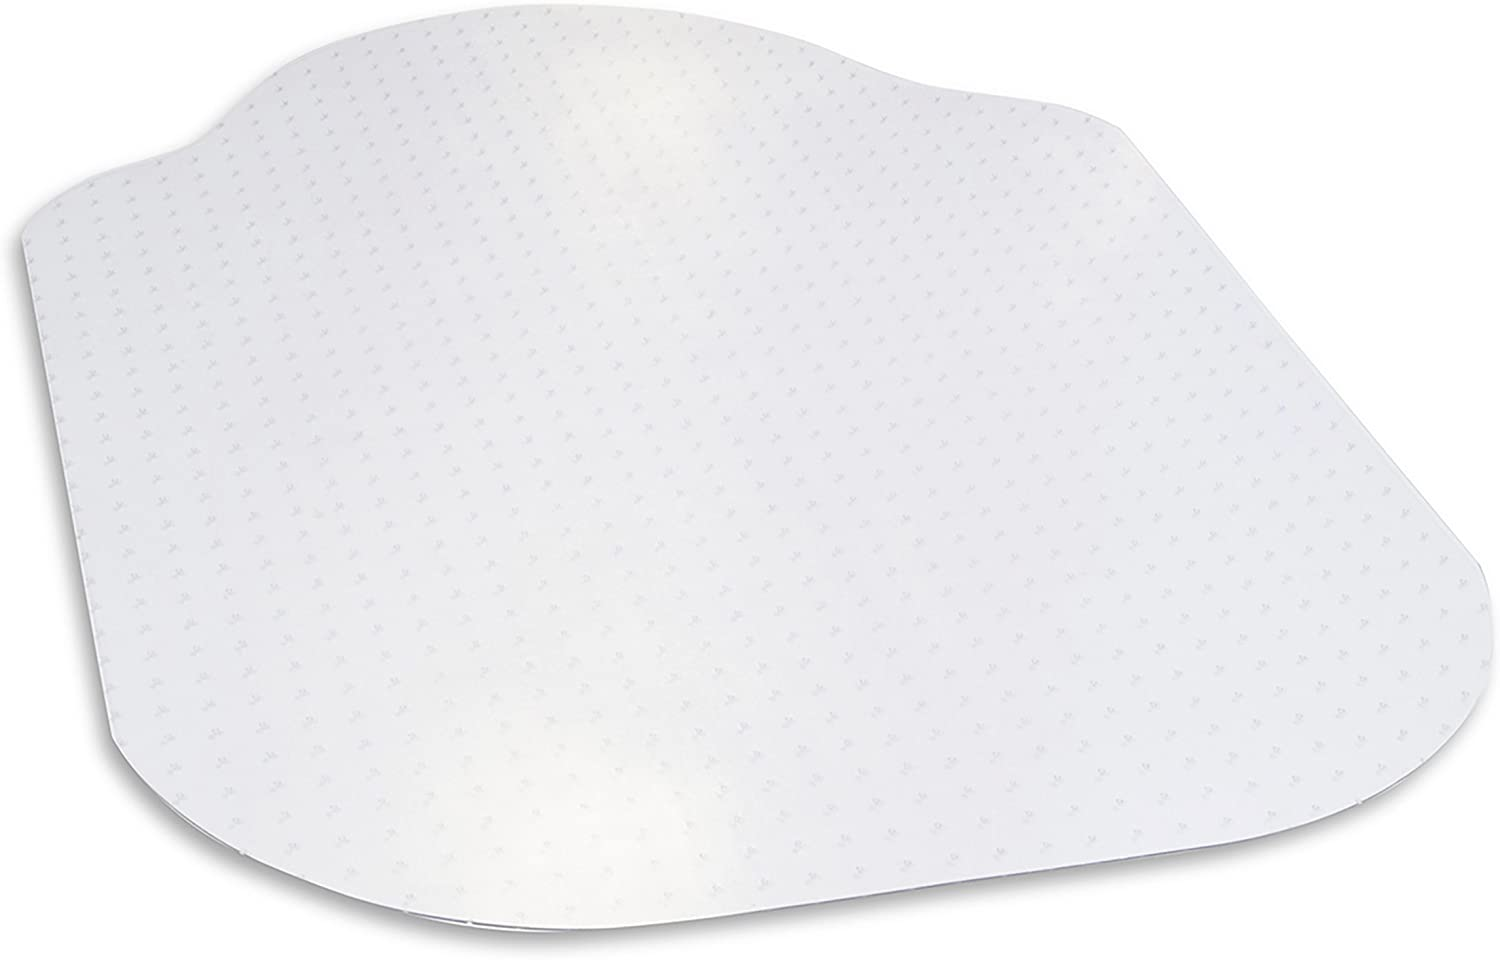 "Evolve Modern Shape 39""x 52"" Clear Office Chair Mat With Lip For Low Pile Carpet, Made in the USA By Dimex, Phthalate Free (C5C5003G)"